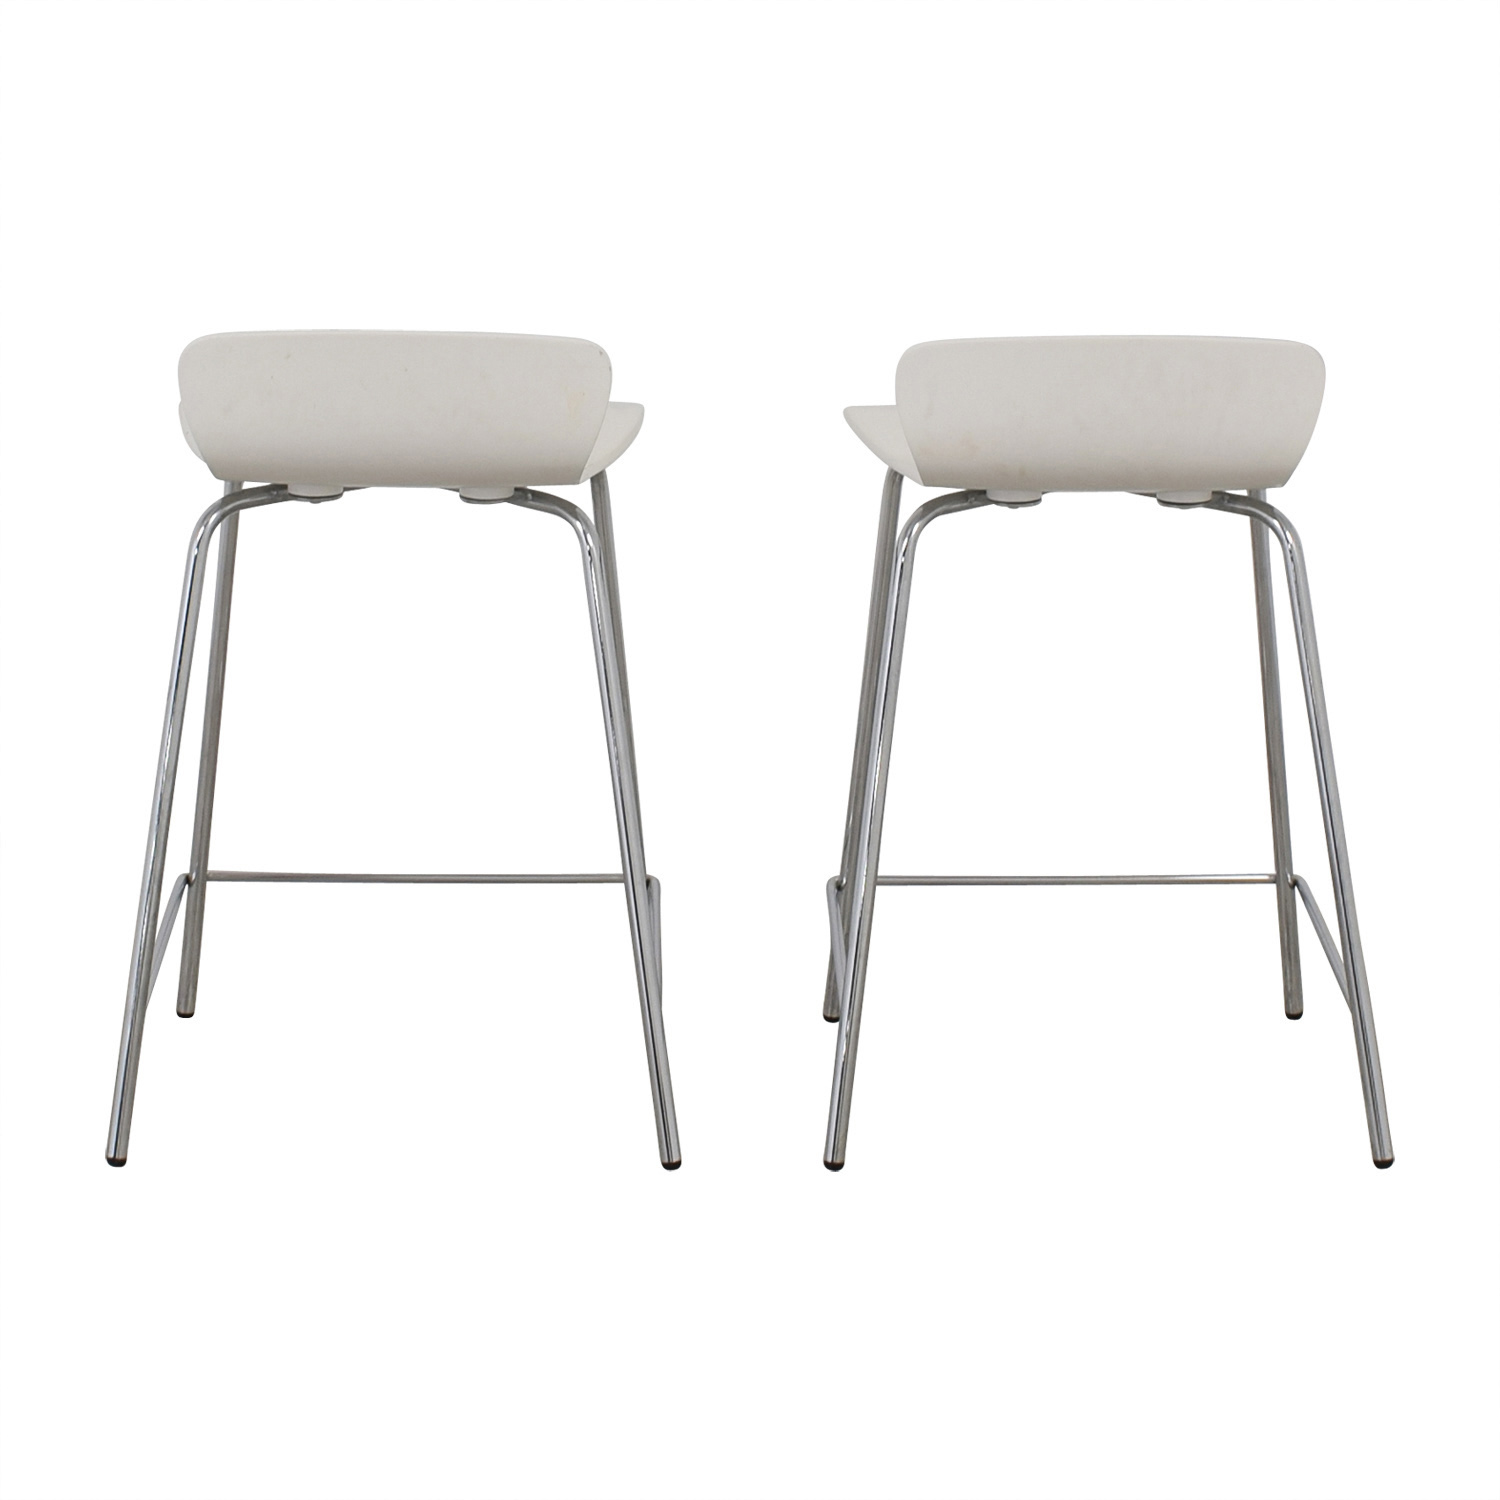 Crate and Barrel Felix White Counter Stools / Chairs